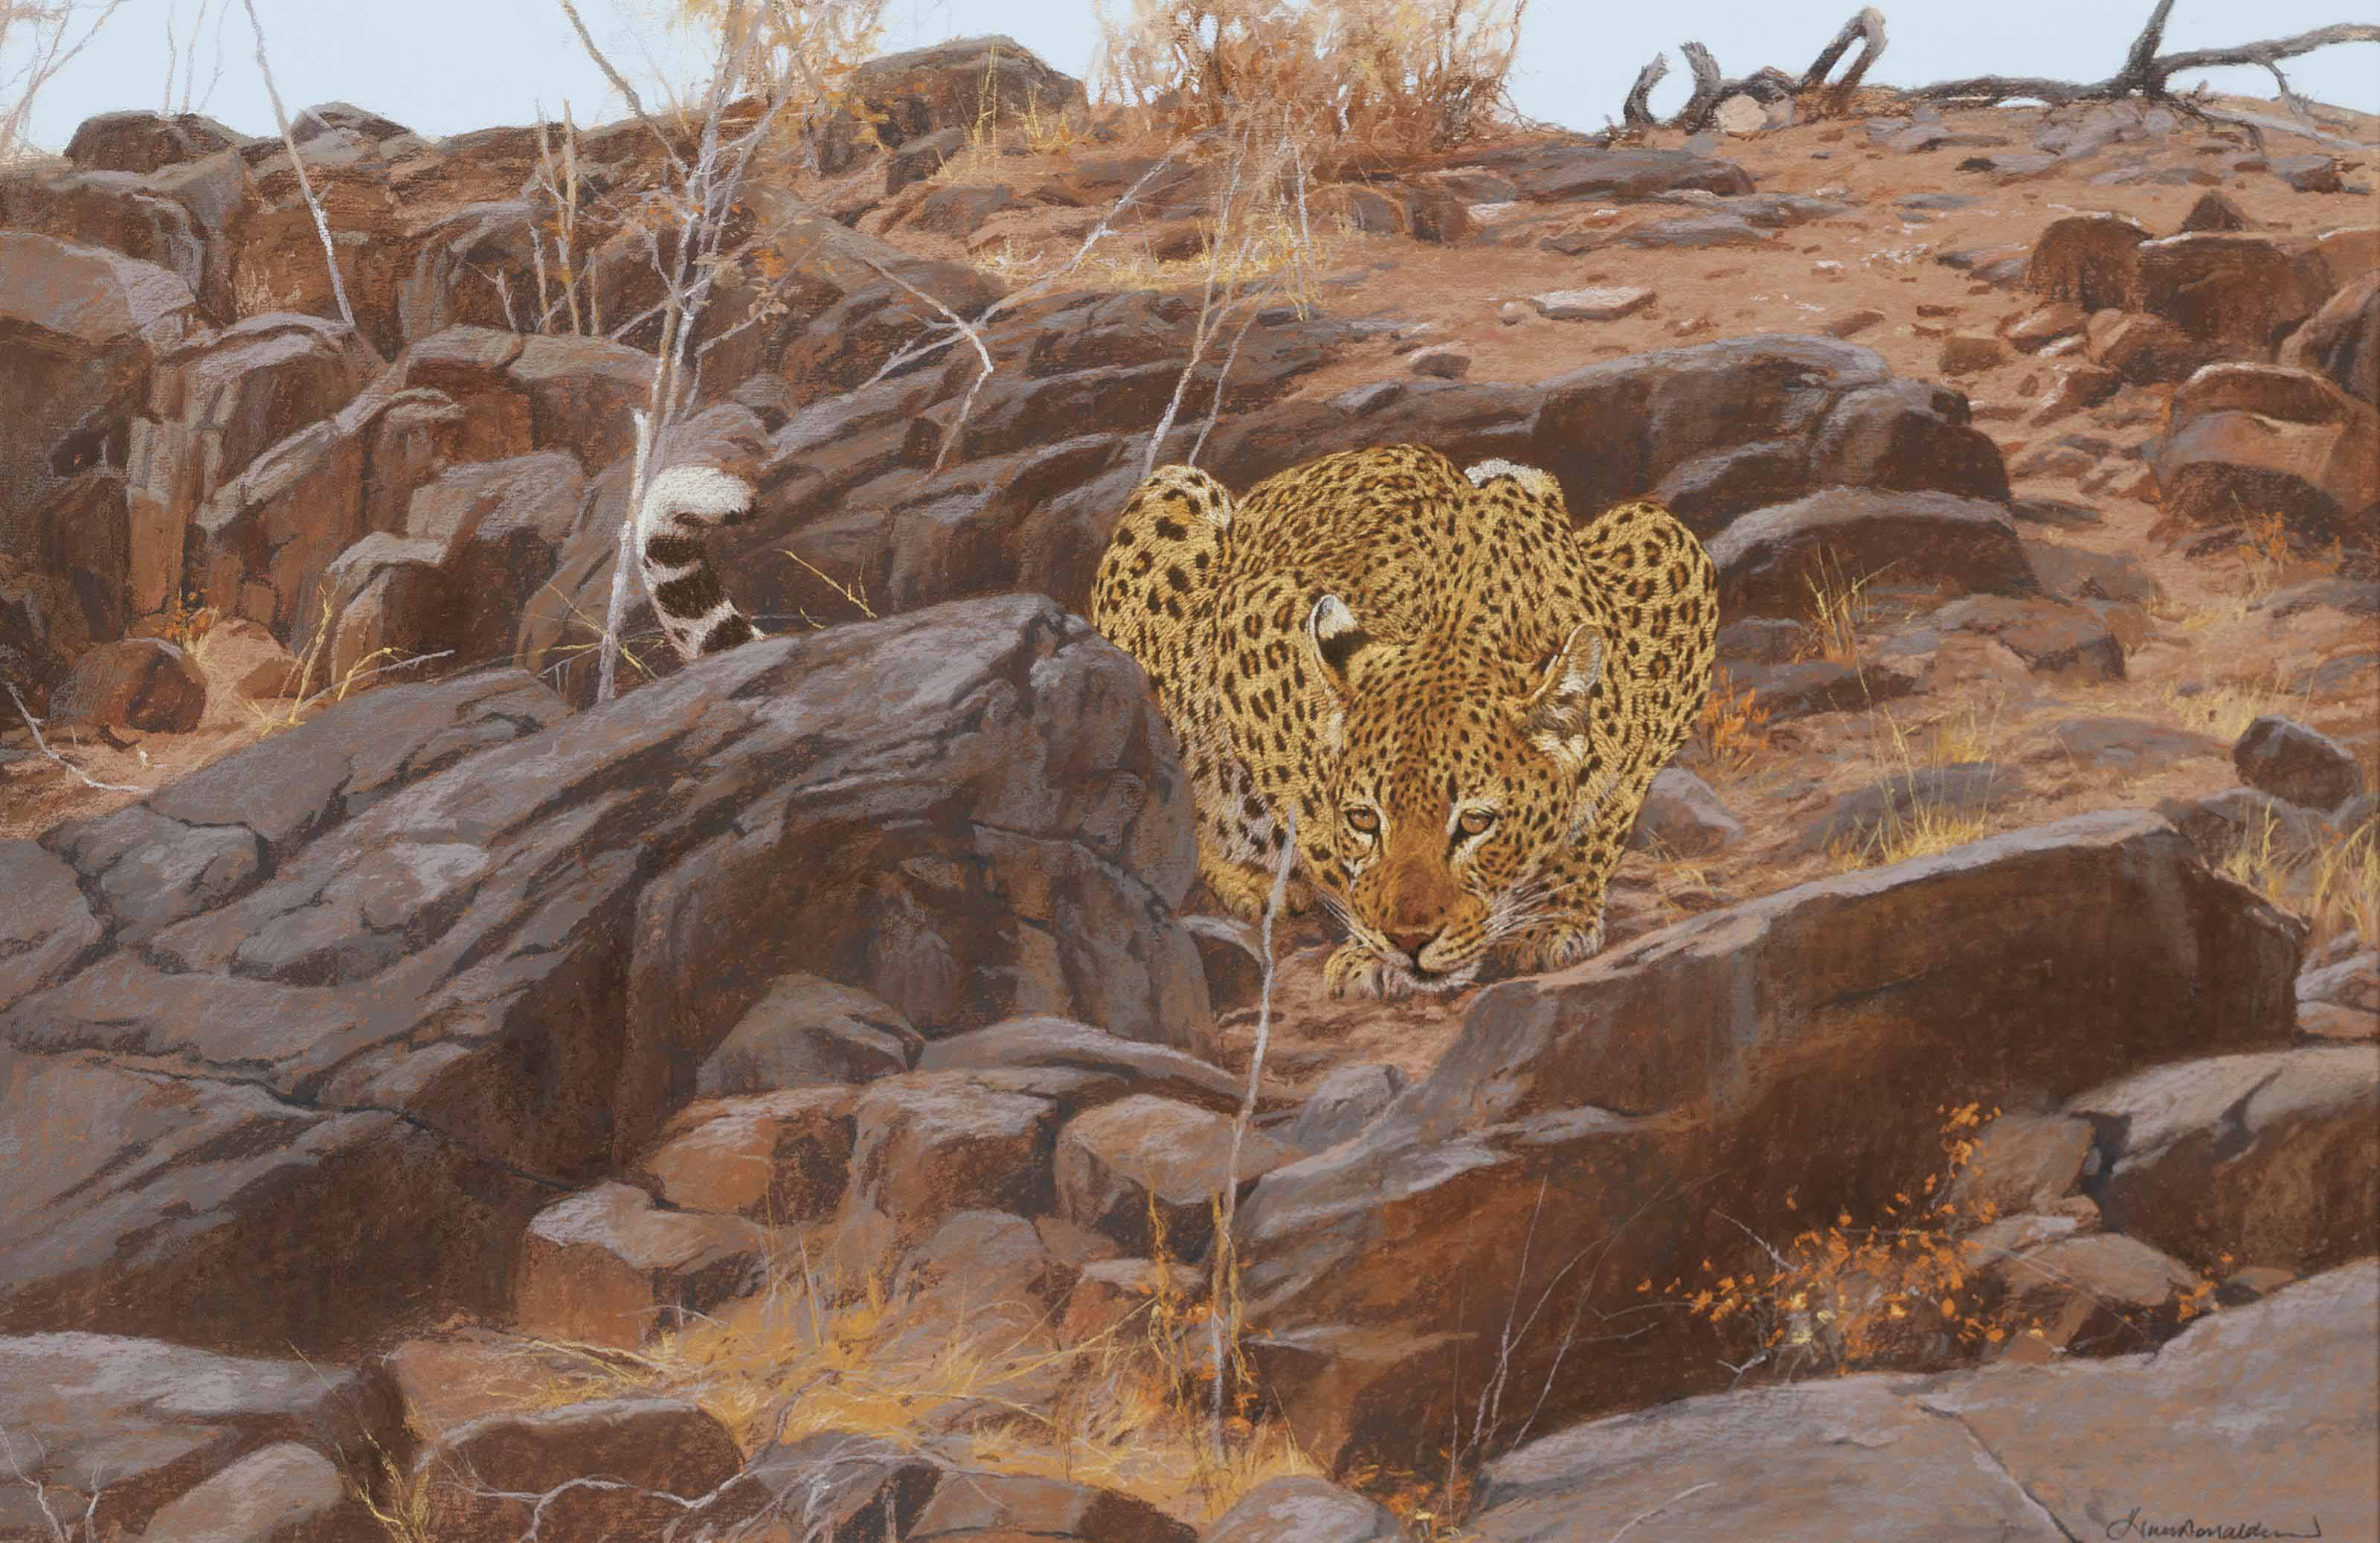 A leopard surveying his territory